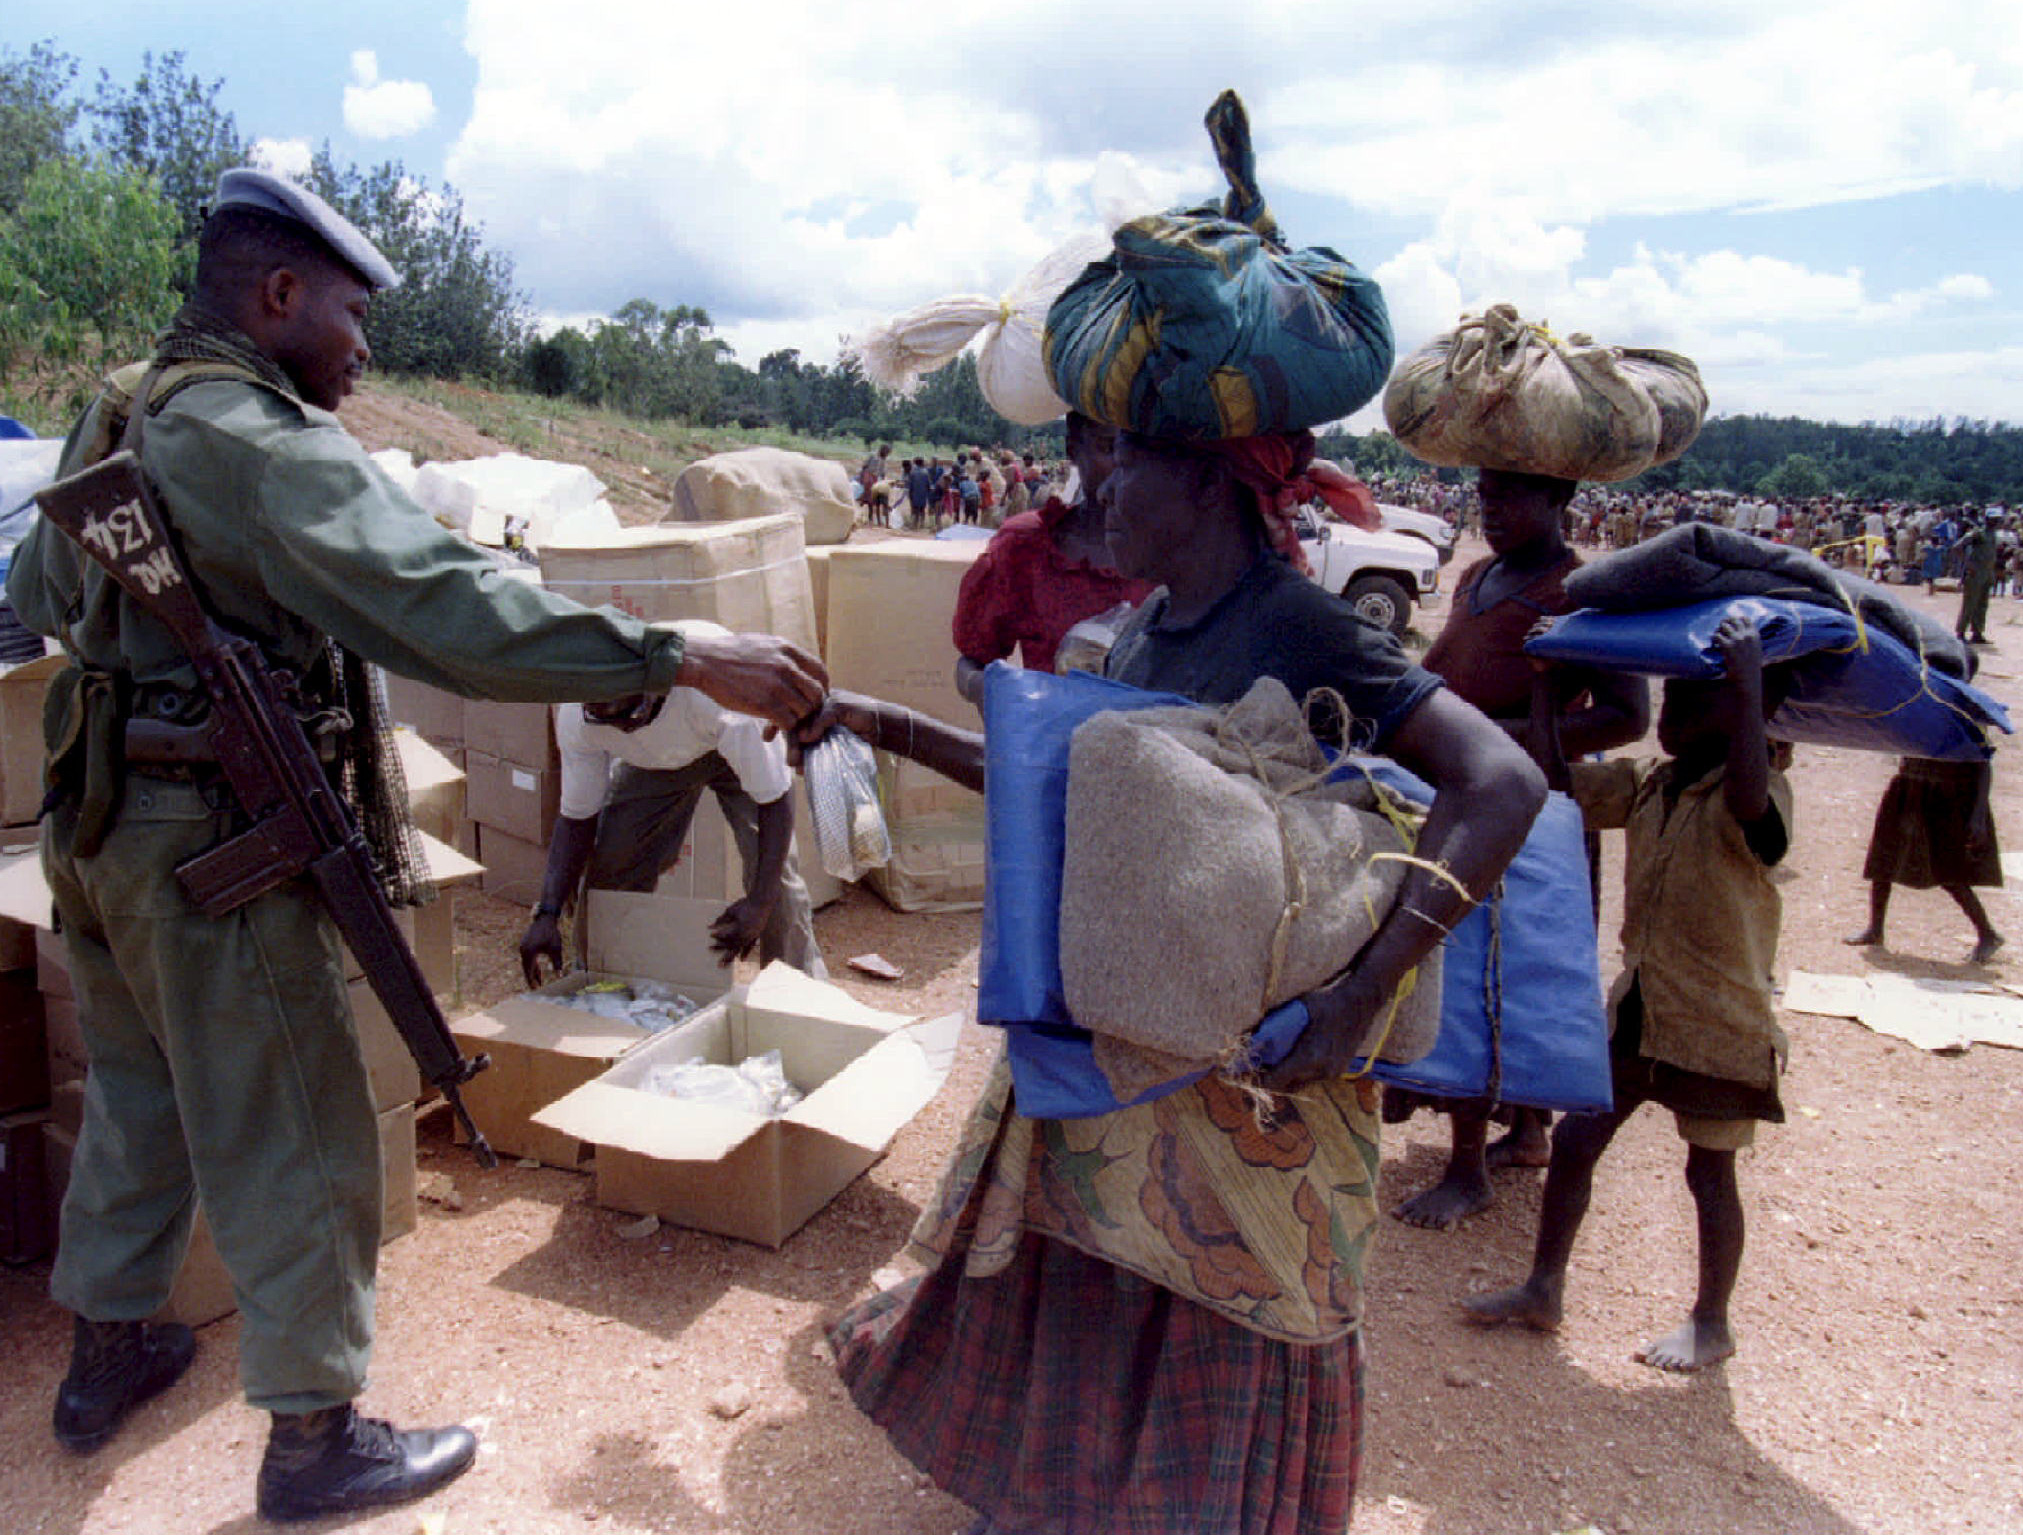 A soldier hands food to a woman.